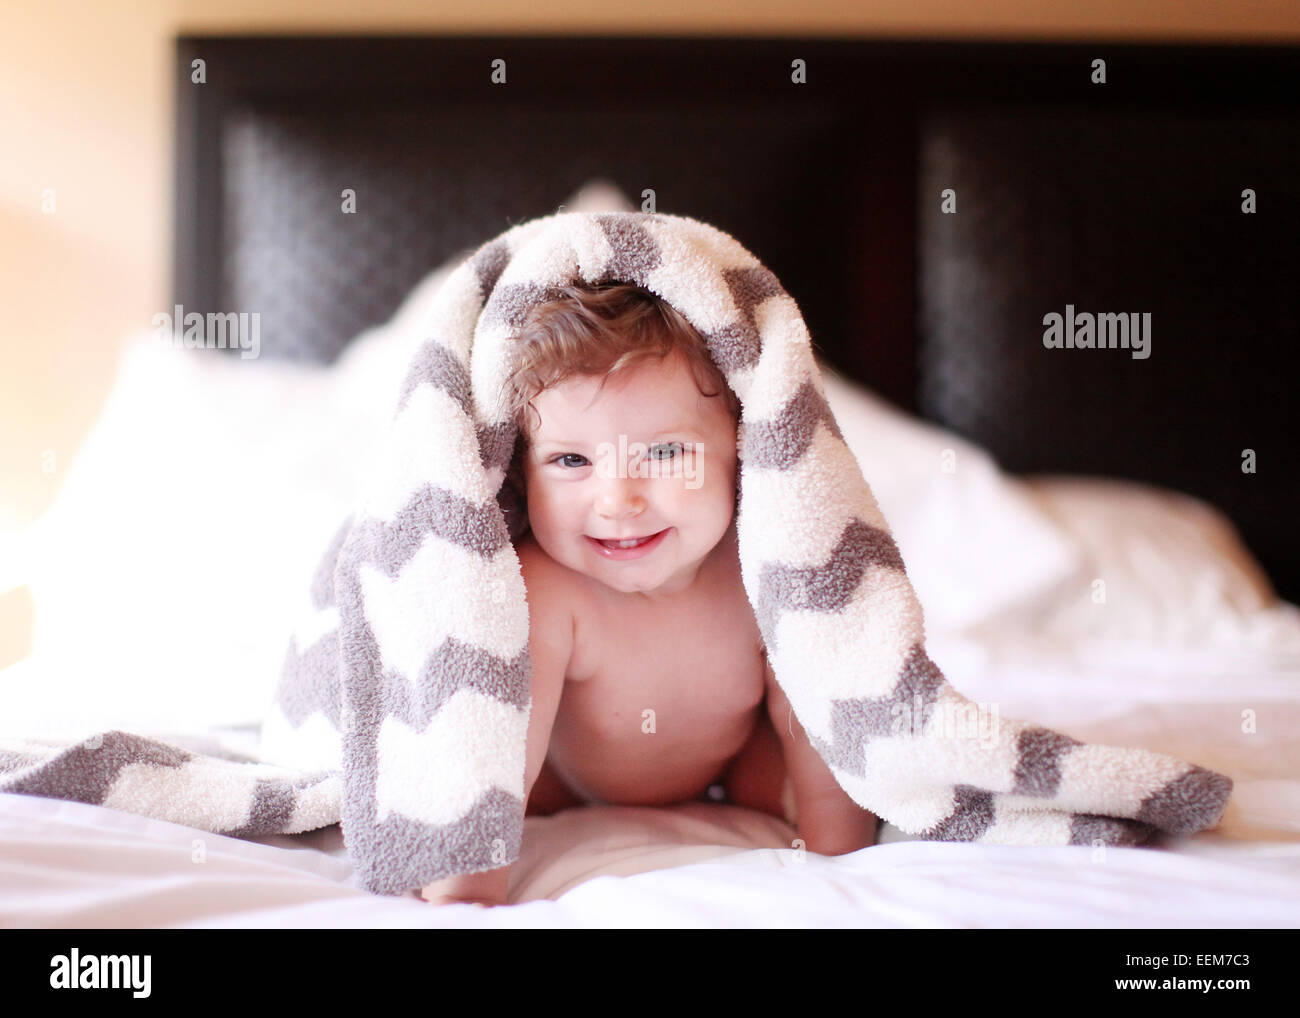 Smiling baby girl sitting on bed under a blanket - Stock Image